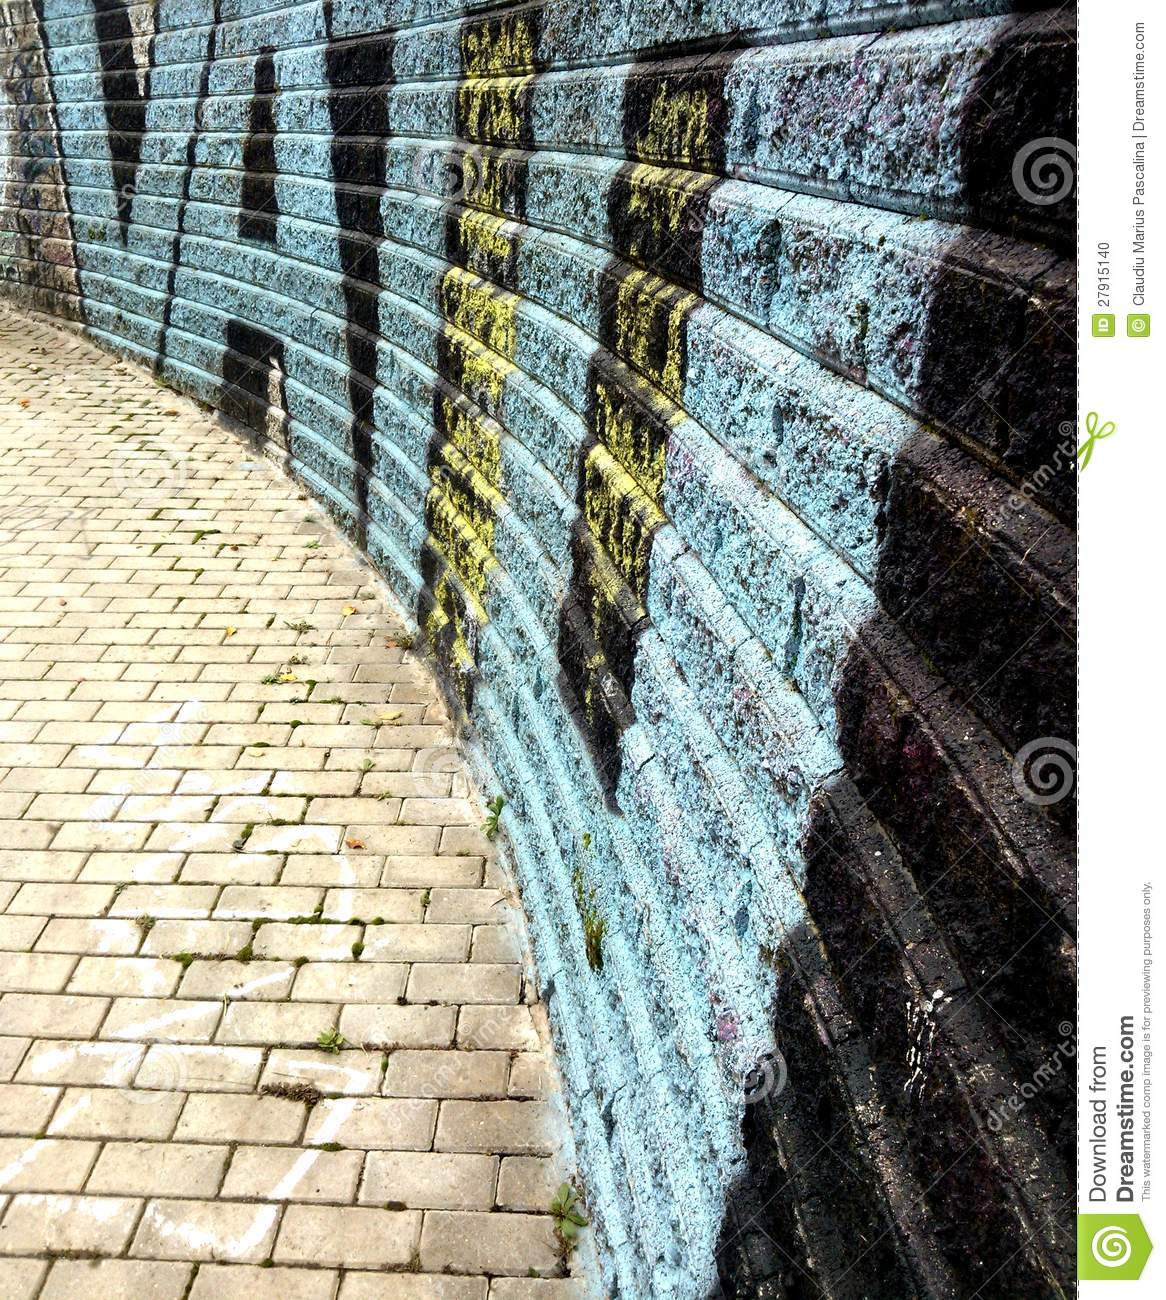 Perspective background image of graffiti brick wall in milan italy